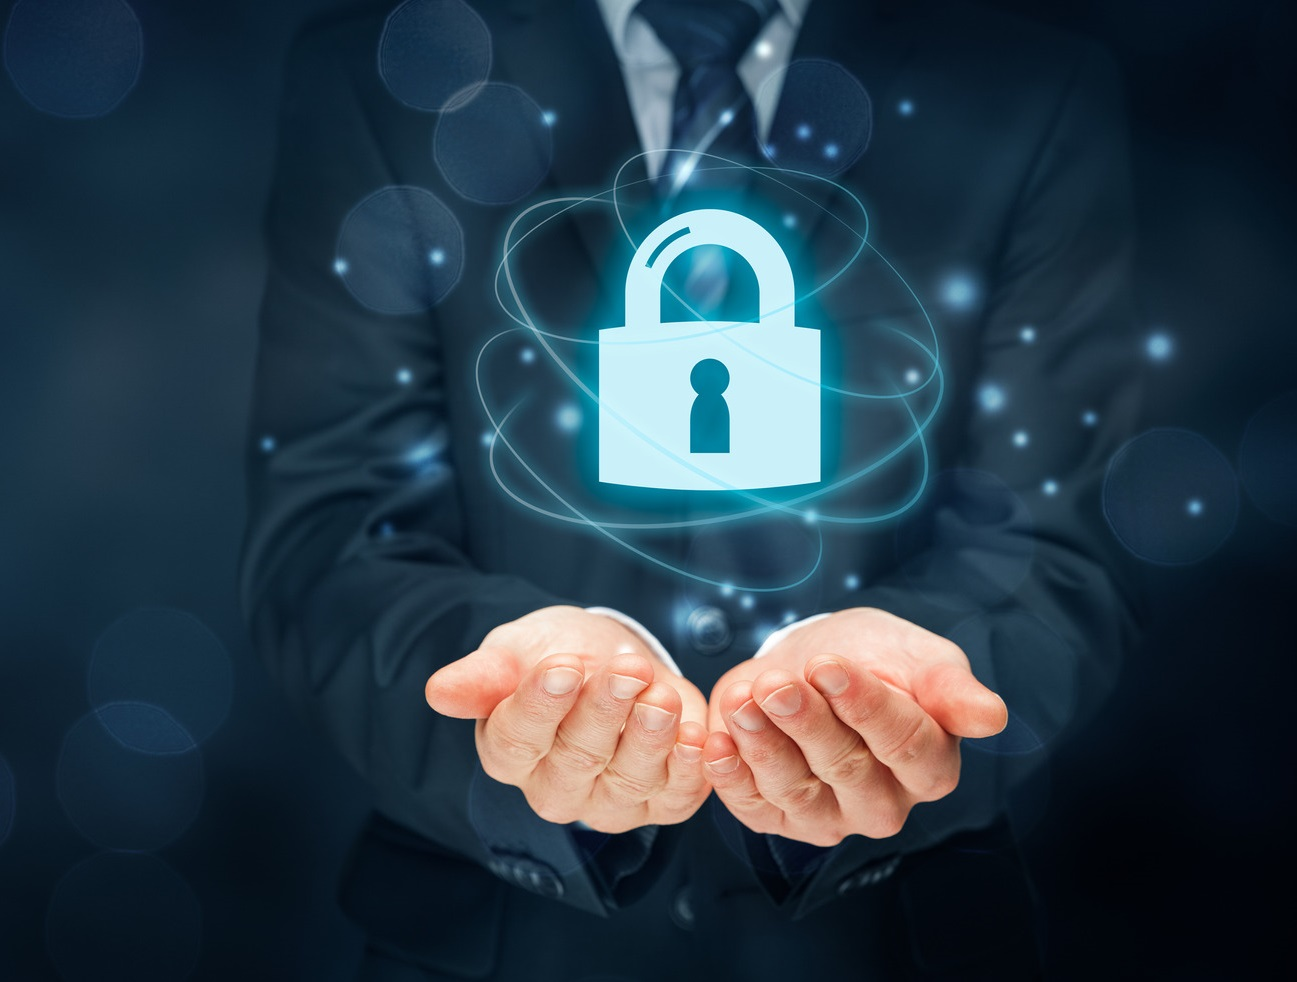 What's your supply chain security program level?